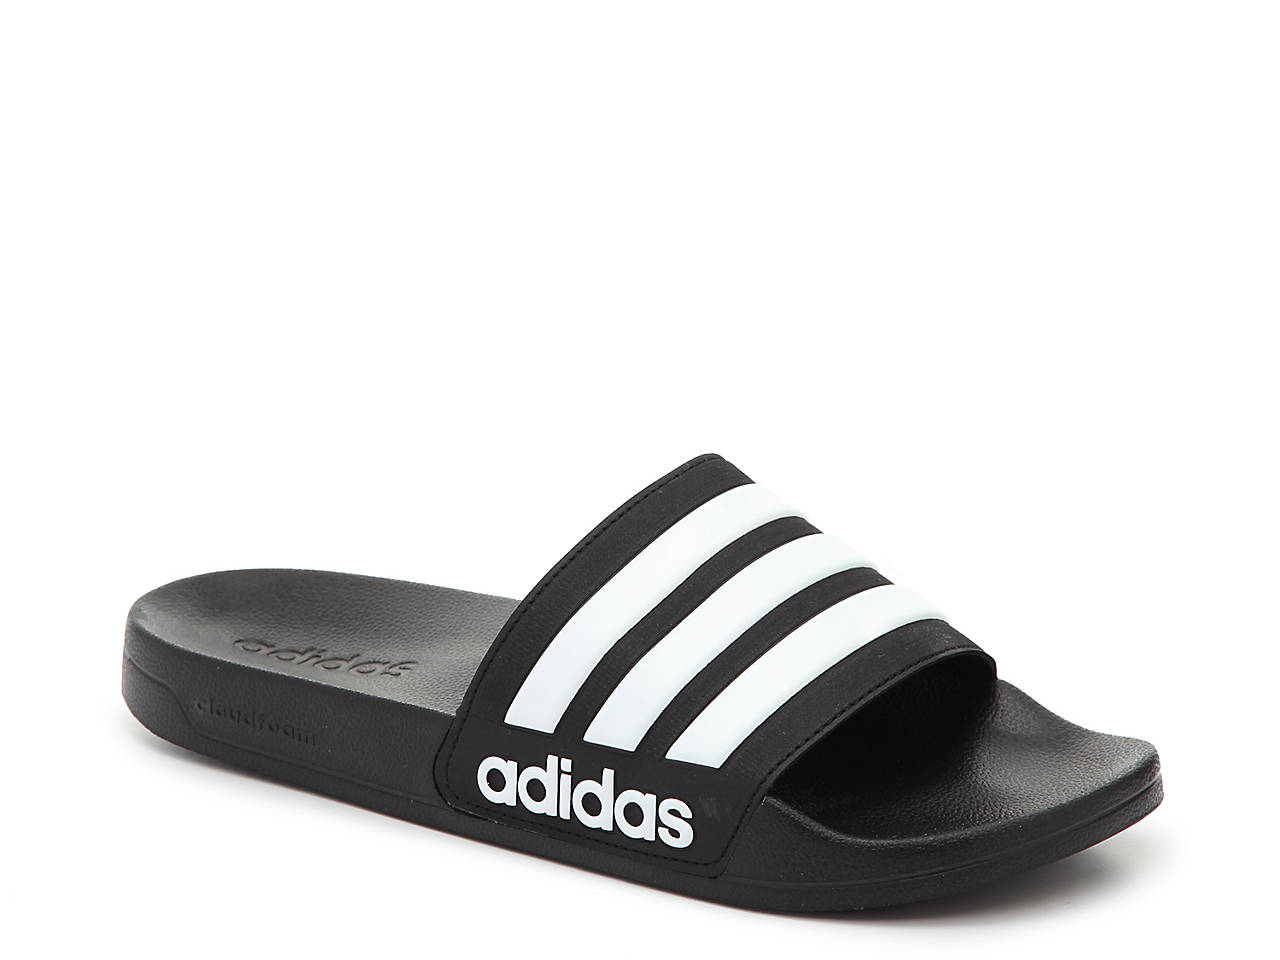 35b2a565201e adidas Adilette Shower Slide Sandal - Men s Men s Shoes